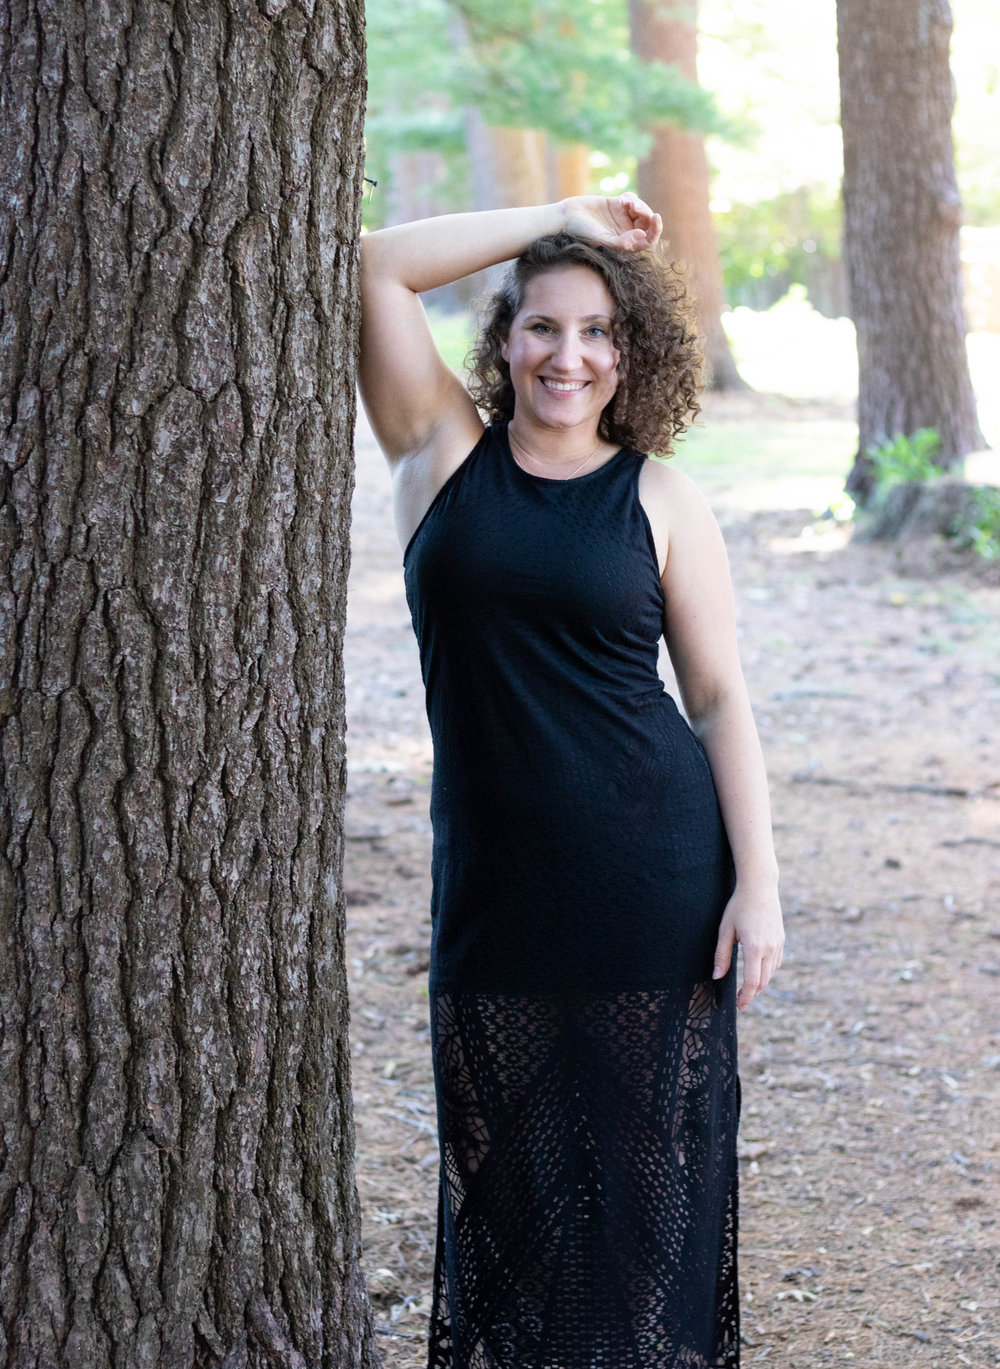 Lifestyle portrait of a woman wearing a black dress leaning on a tree in a park in Newburyport, MA by Vision Balm in Charleston, SC.